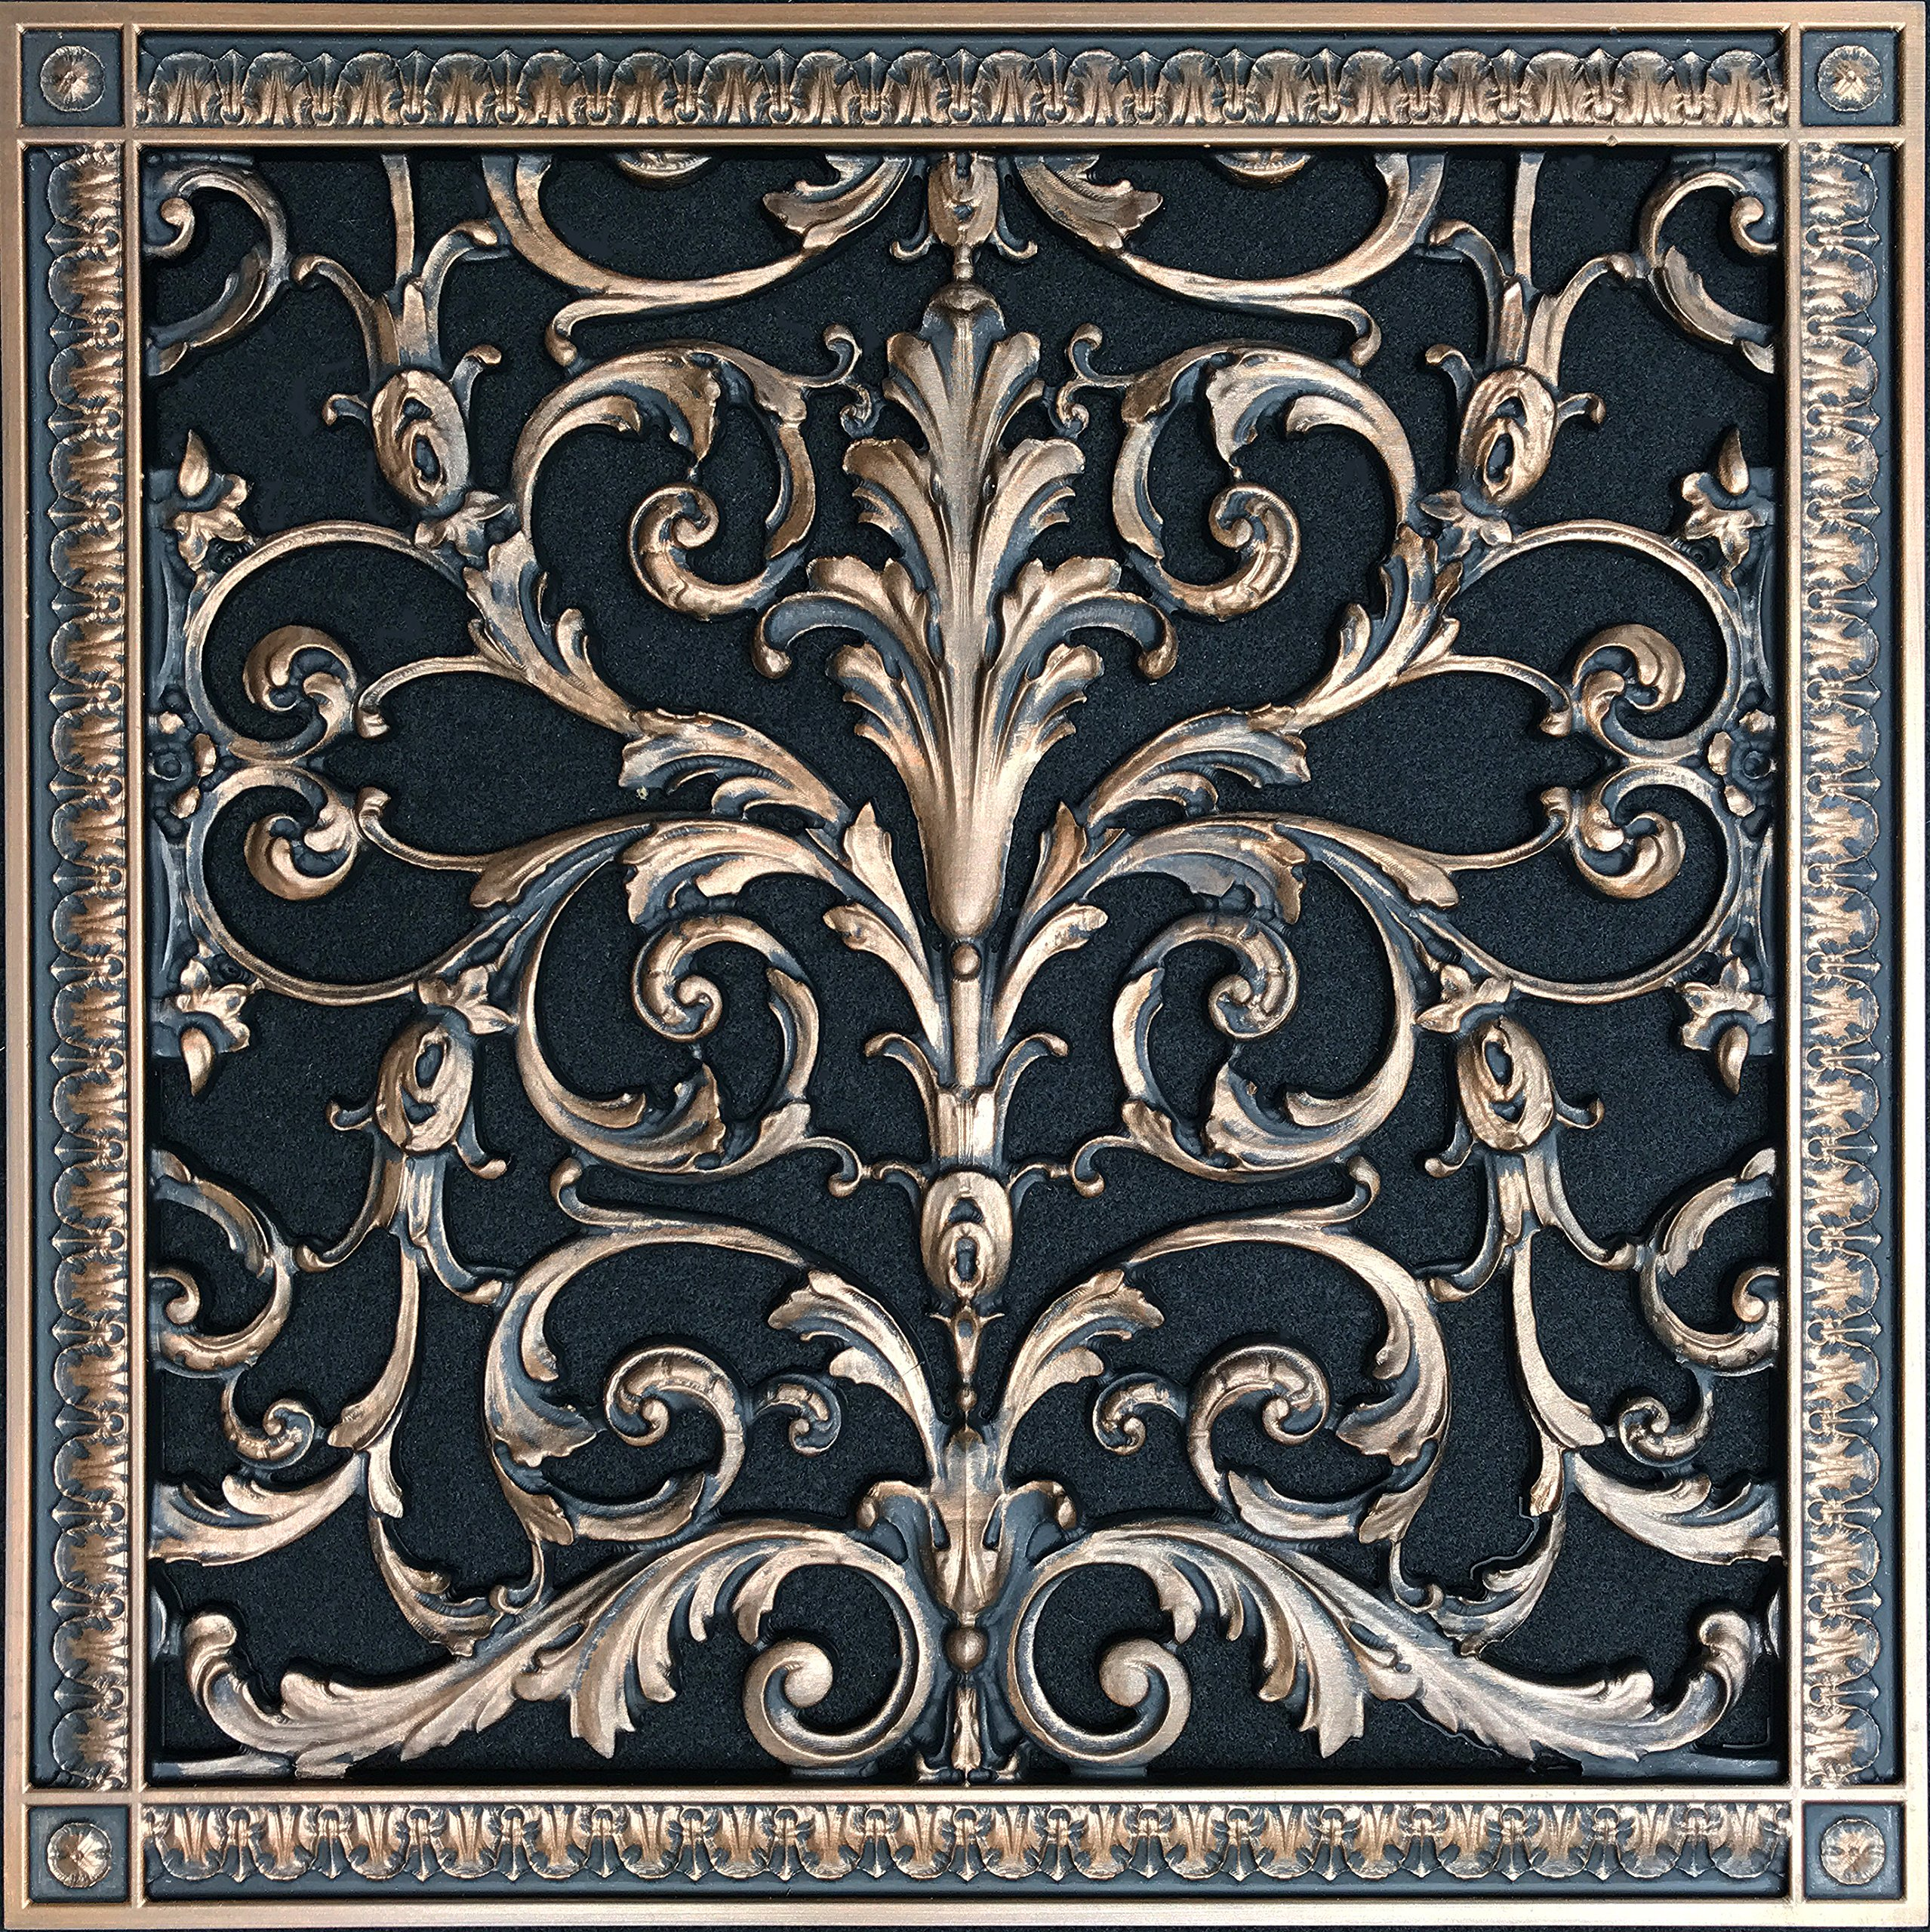 "Decorative Vent Cover, Grille, Return Register, made of Urethane Resin, in French style fits over a 16""x 16"" duct opening. Total size, 18"" by 18"", walls & ceilings only(not for floors) (Rubbed Bronze) by Beaux-Artes, Ltd. (Image #1)"